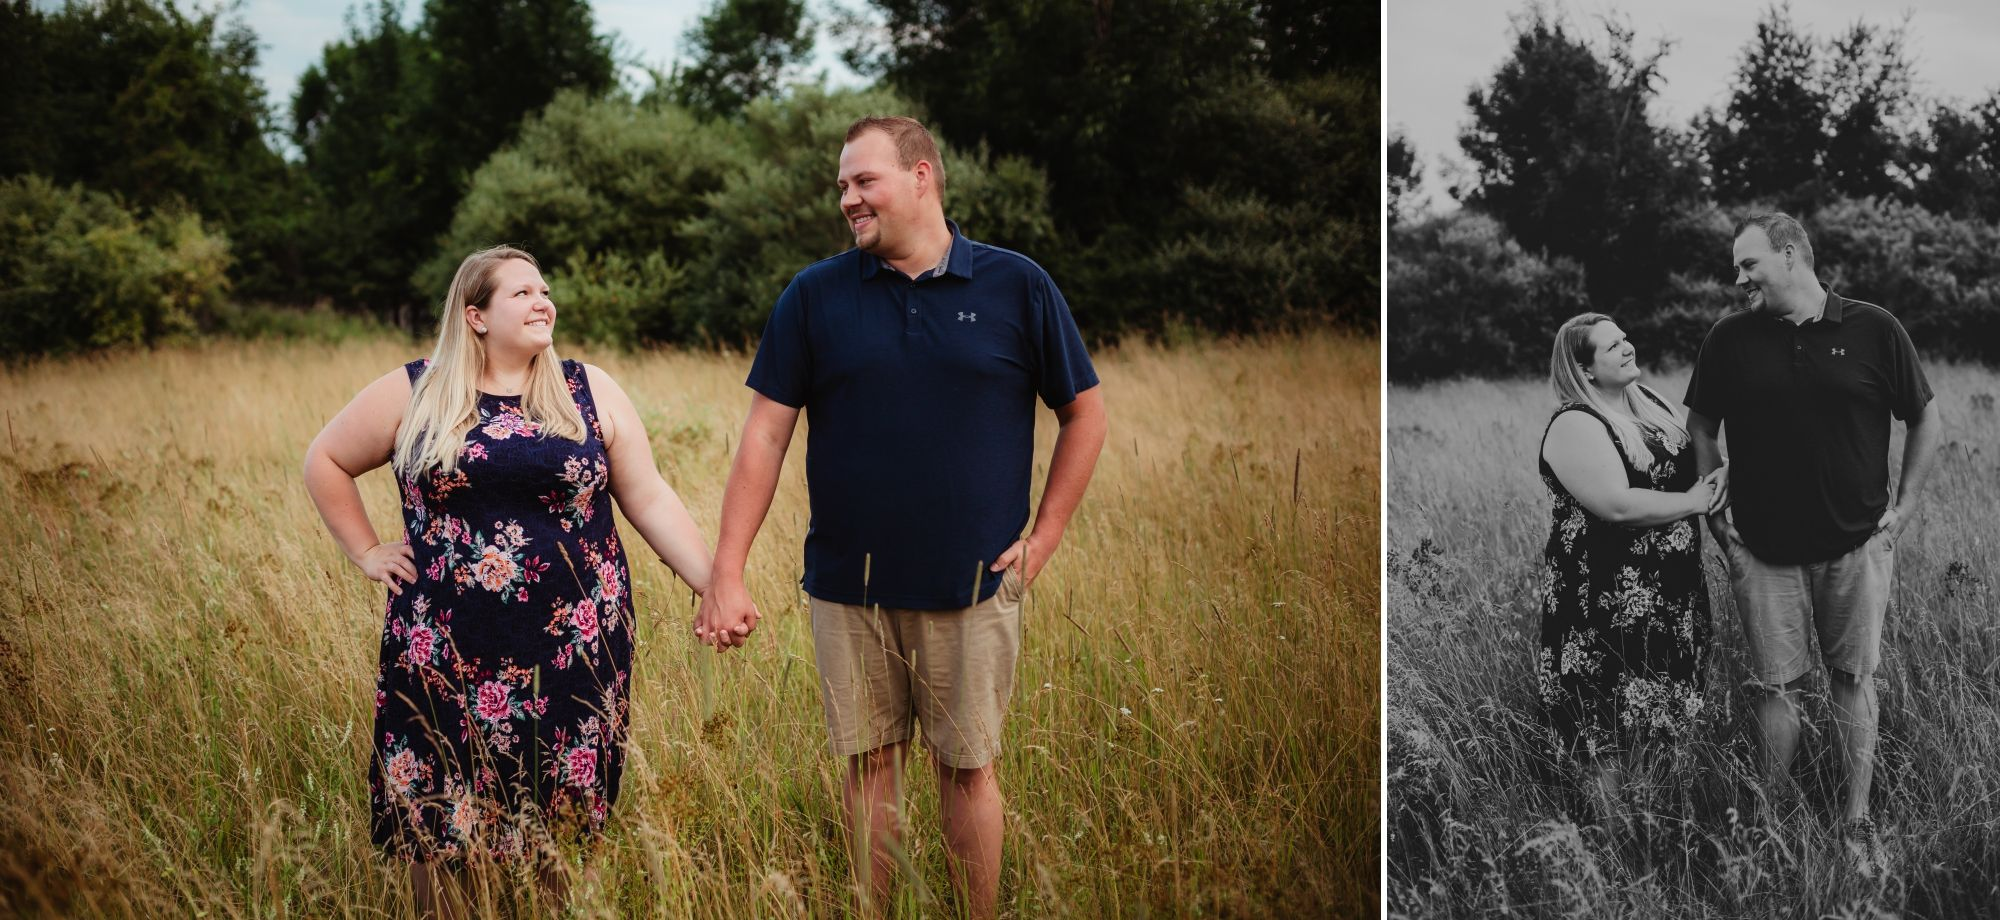 Photos of an engaged couple smiling at each other in a field. She wears a dark dress with pink floral.